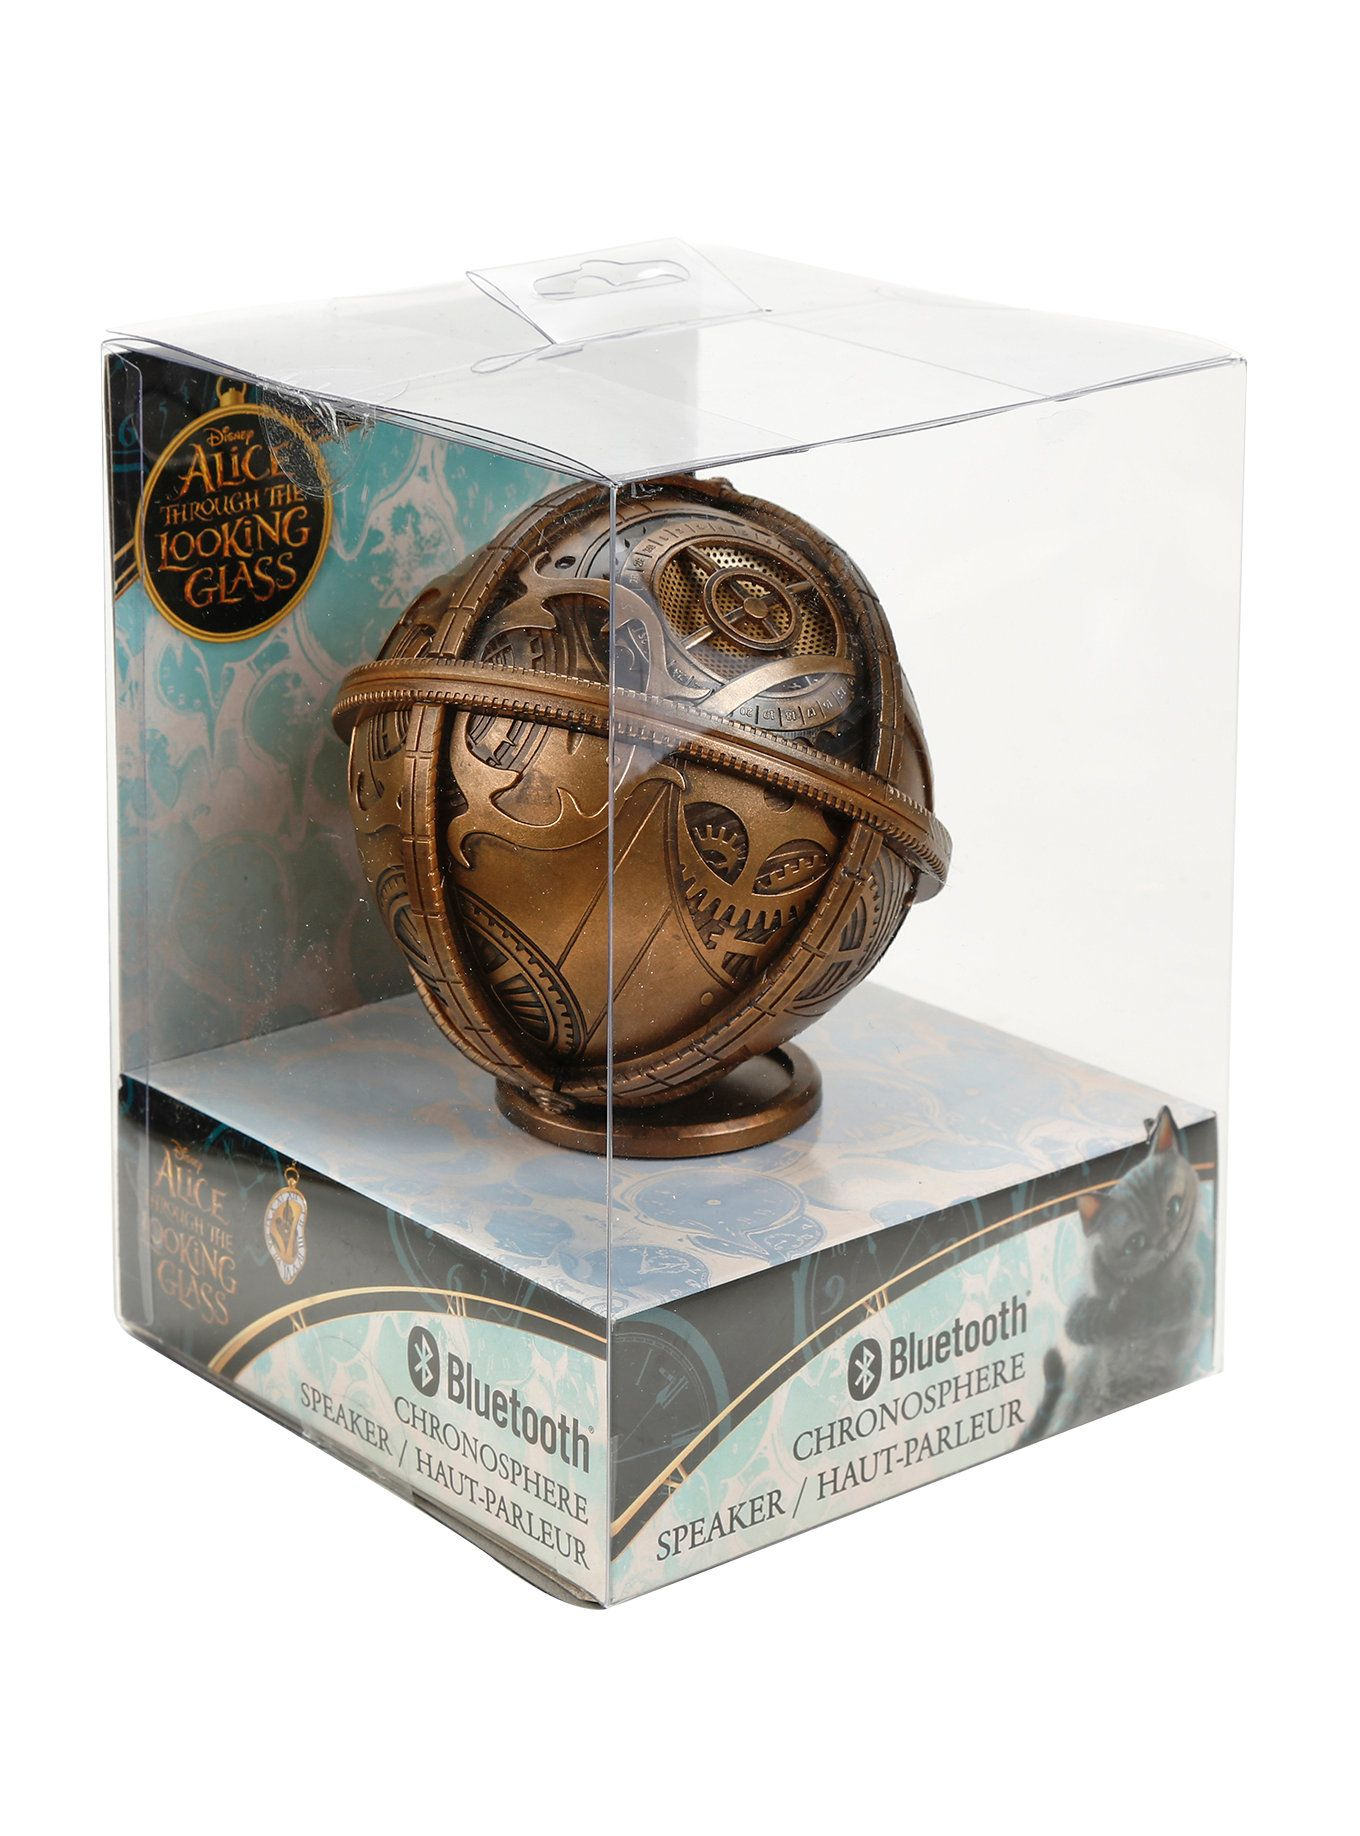 Disney Alice Through The Looking Glass Chronosphere Bluetooth Speaker Hot Topic Through The Looking Glass Disney Alice Alice In Wonderland Steampunk